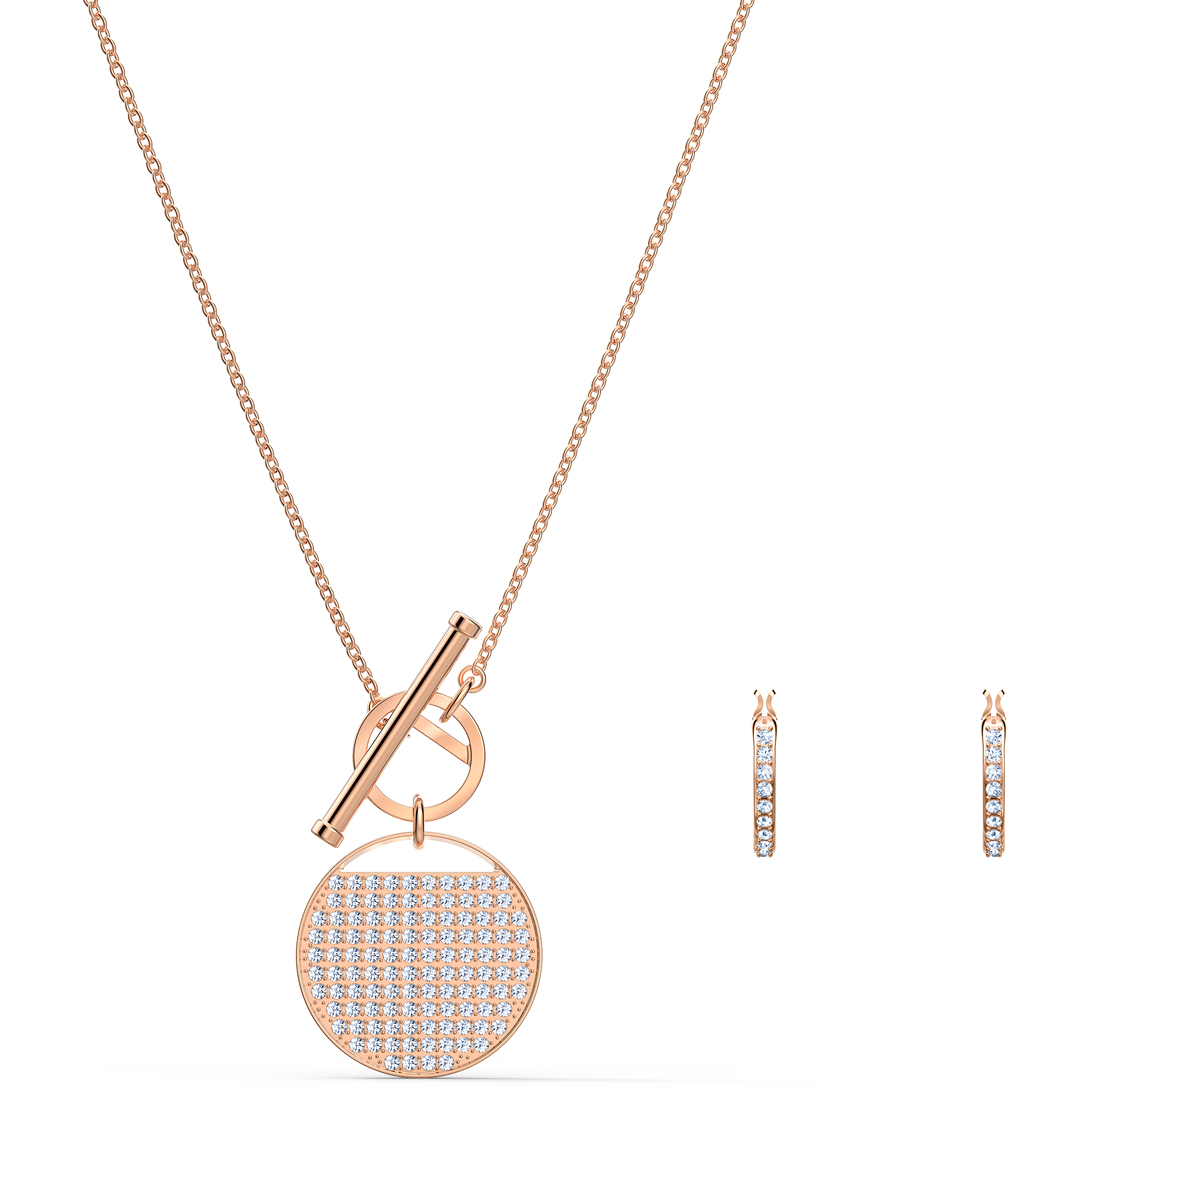 Swarovski Ginger T Bar Necklace and Earrings Set, White, Rose Gold Tone Plated